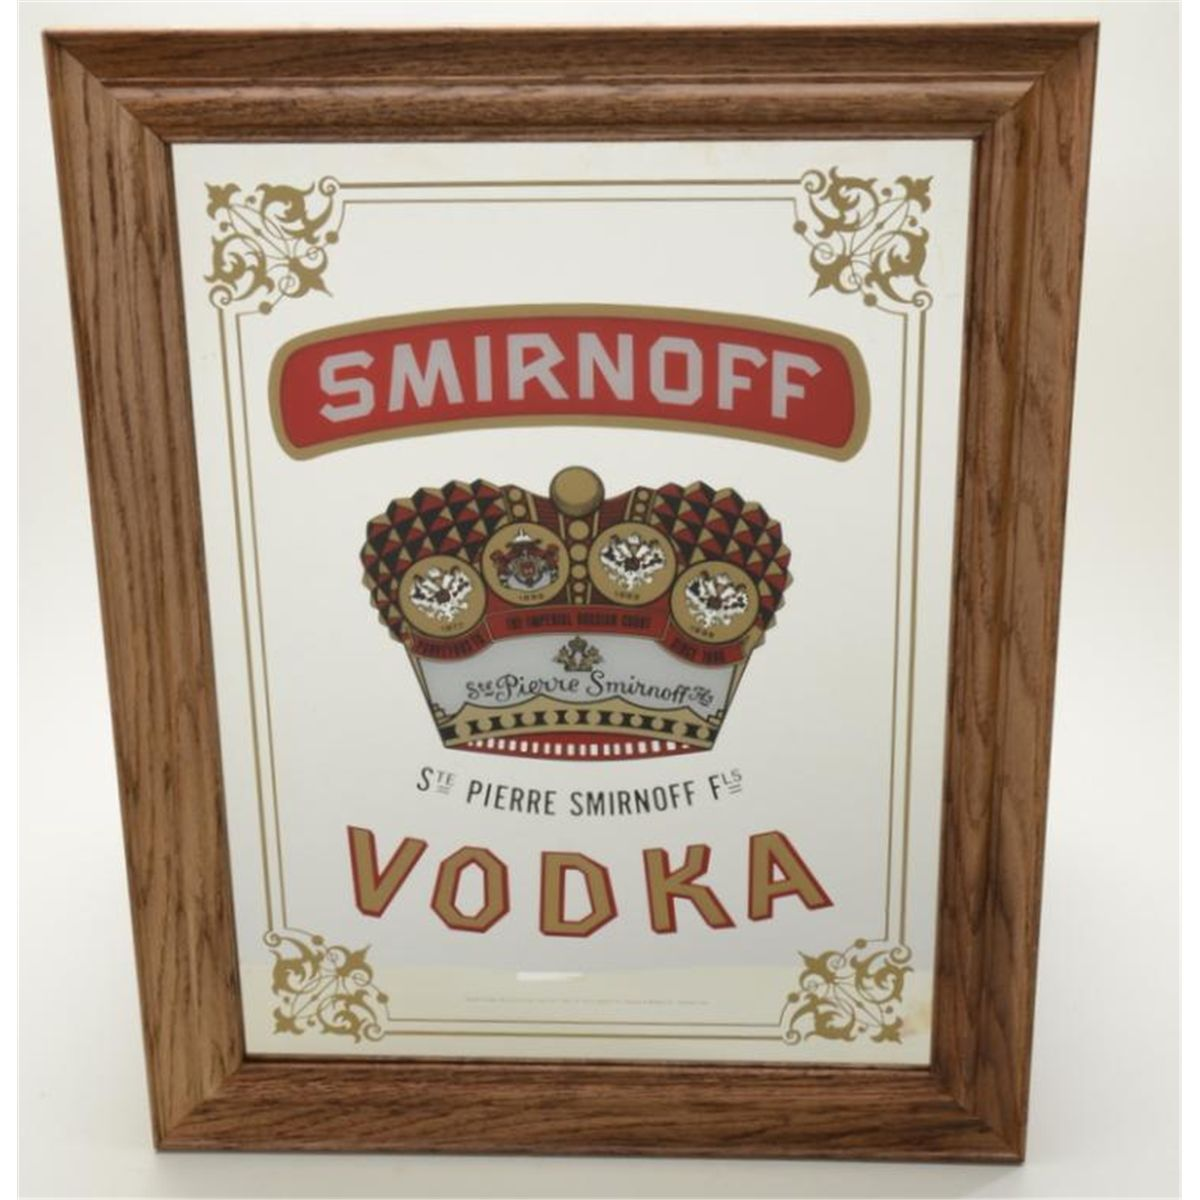 Nicely Made Large Oak Framed Smirnoff Vodka Bar Mirror Rox 24 X 18 In Overall Fine Conditio